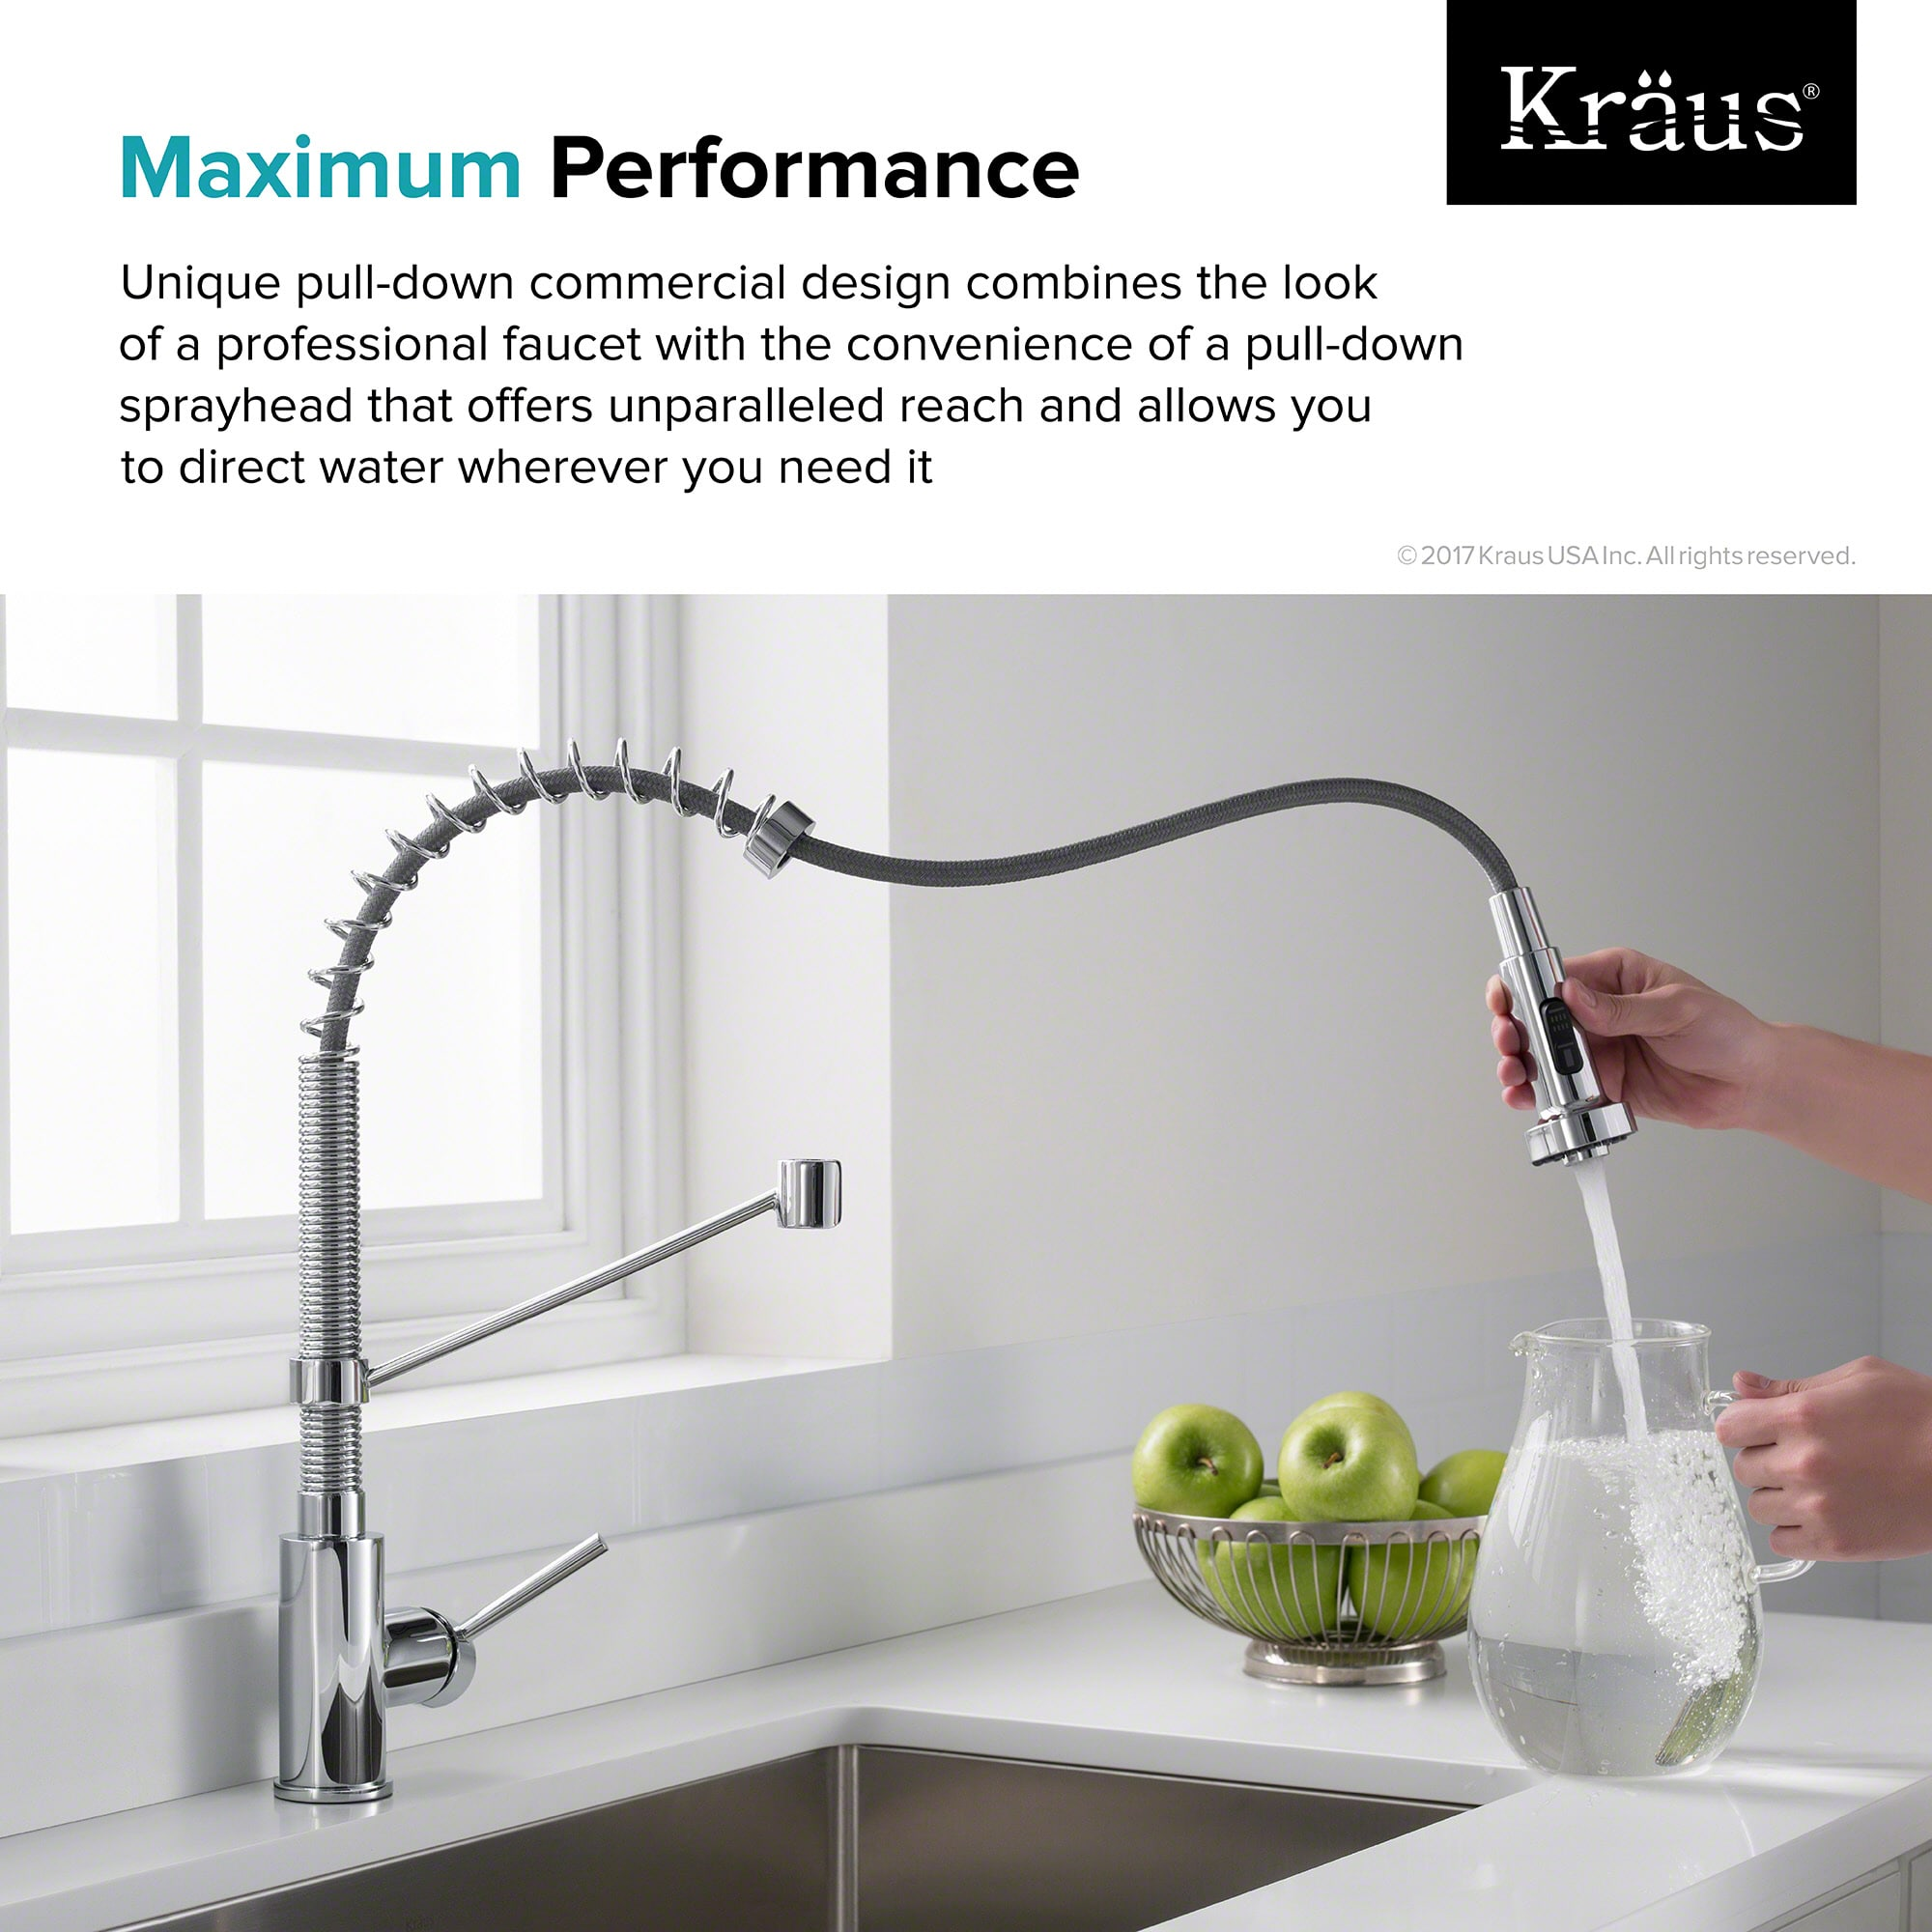 ideas coh design for kraus decor ufaucet down and ufauceth chrome pull excellent best spring sprayer fabulous commercial kitchen faucets captivating faucet modern with sink